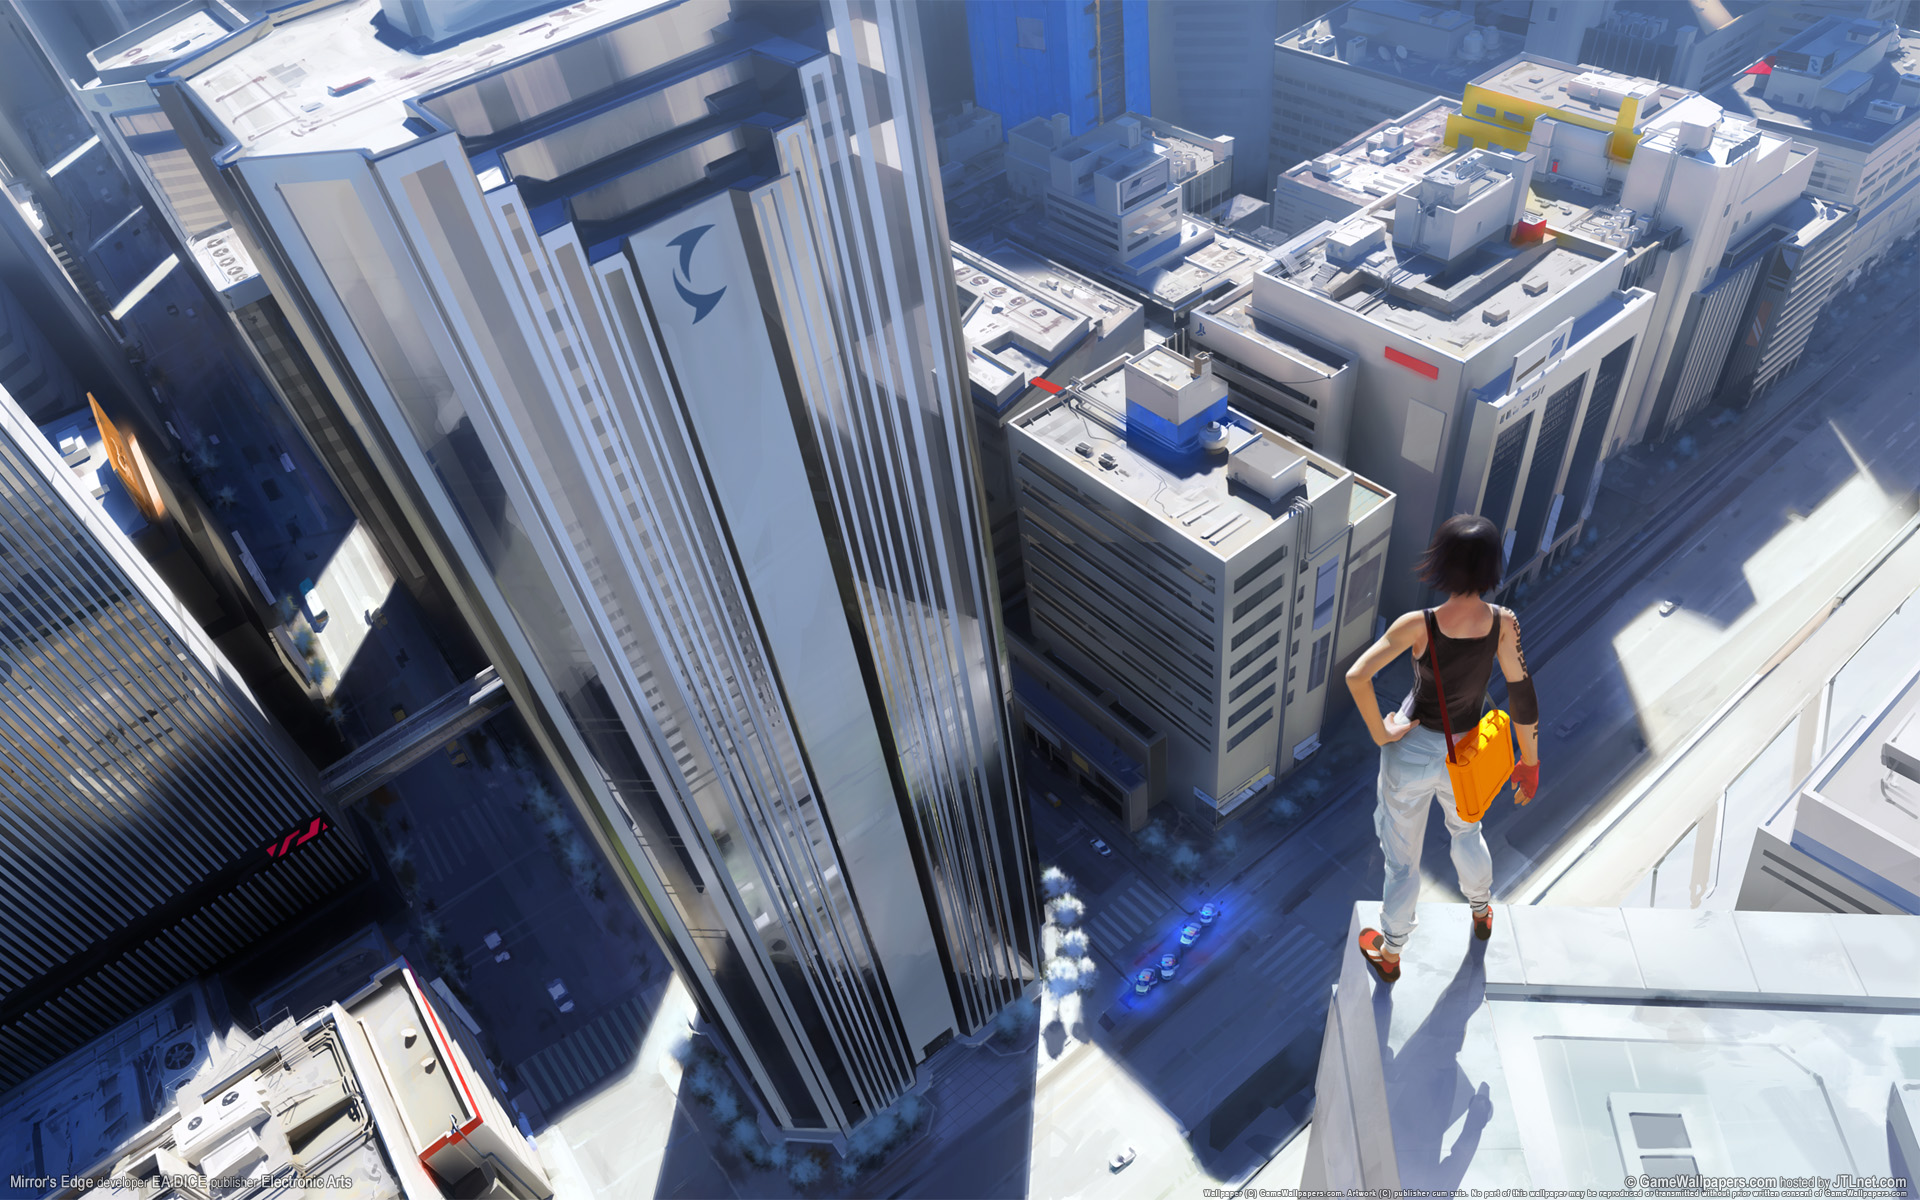 Mirror's Edge by Myaskill